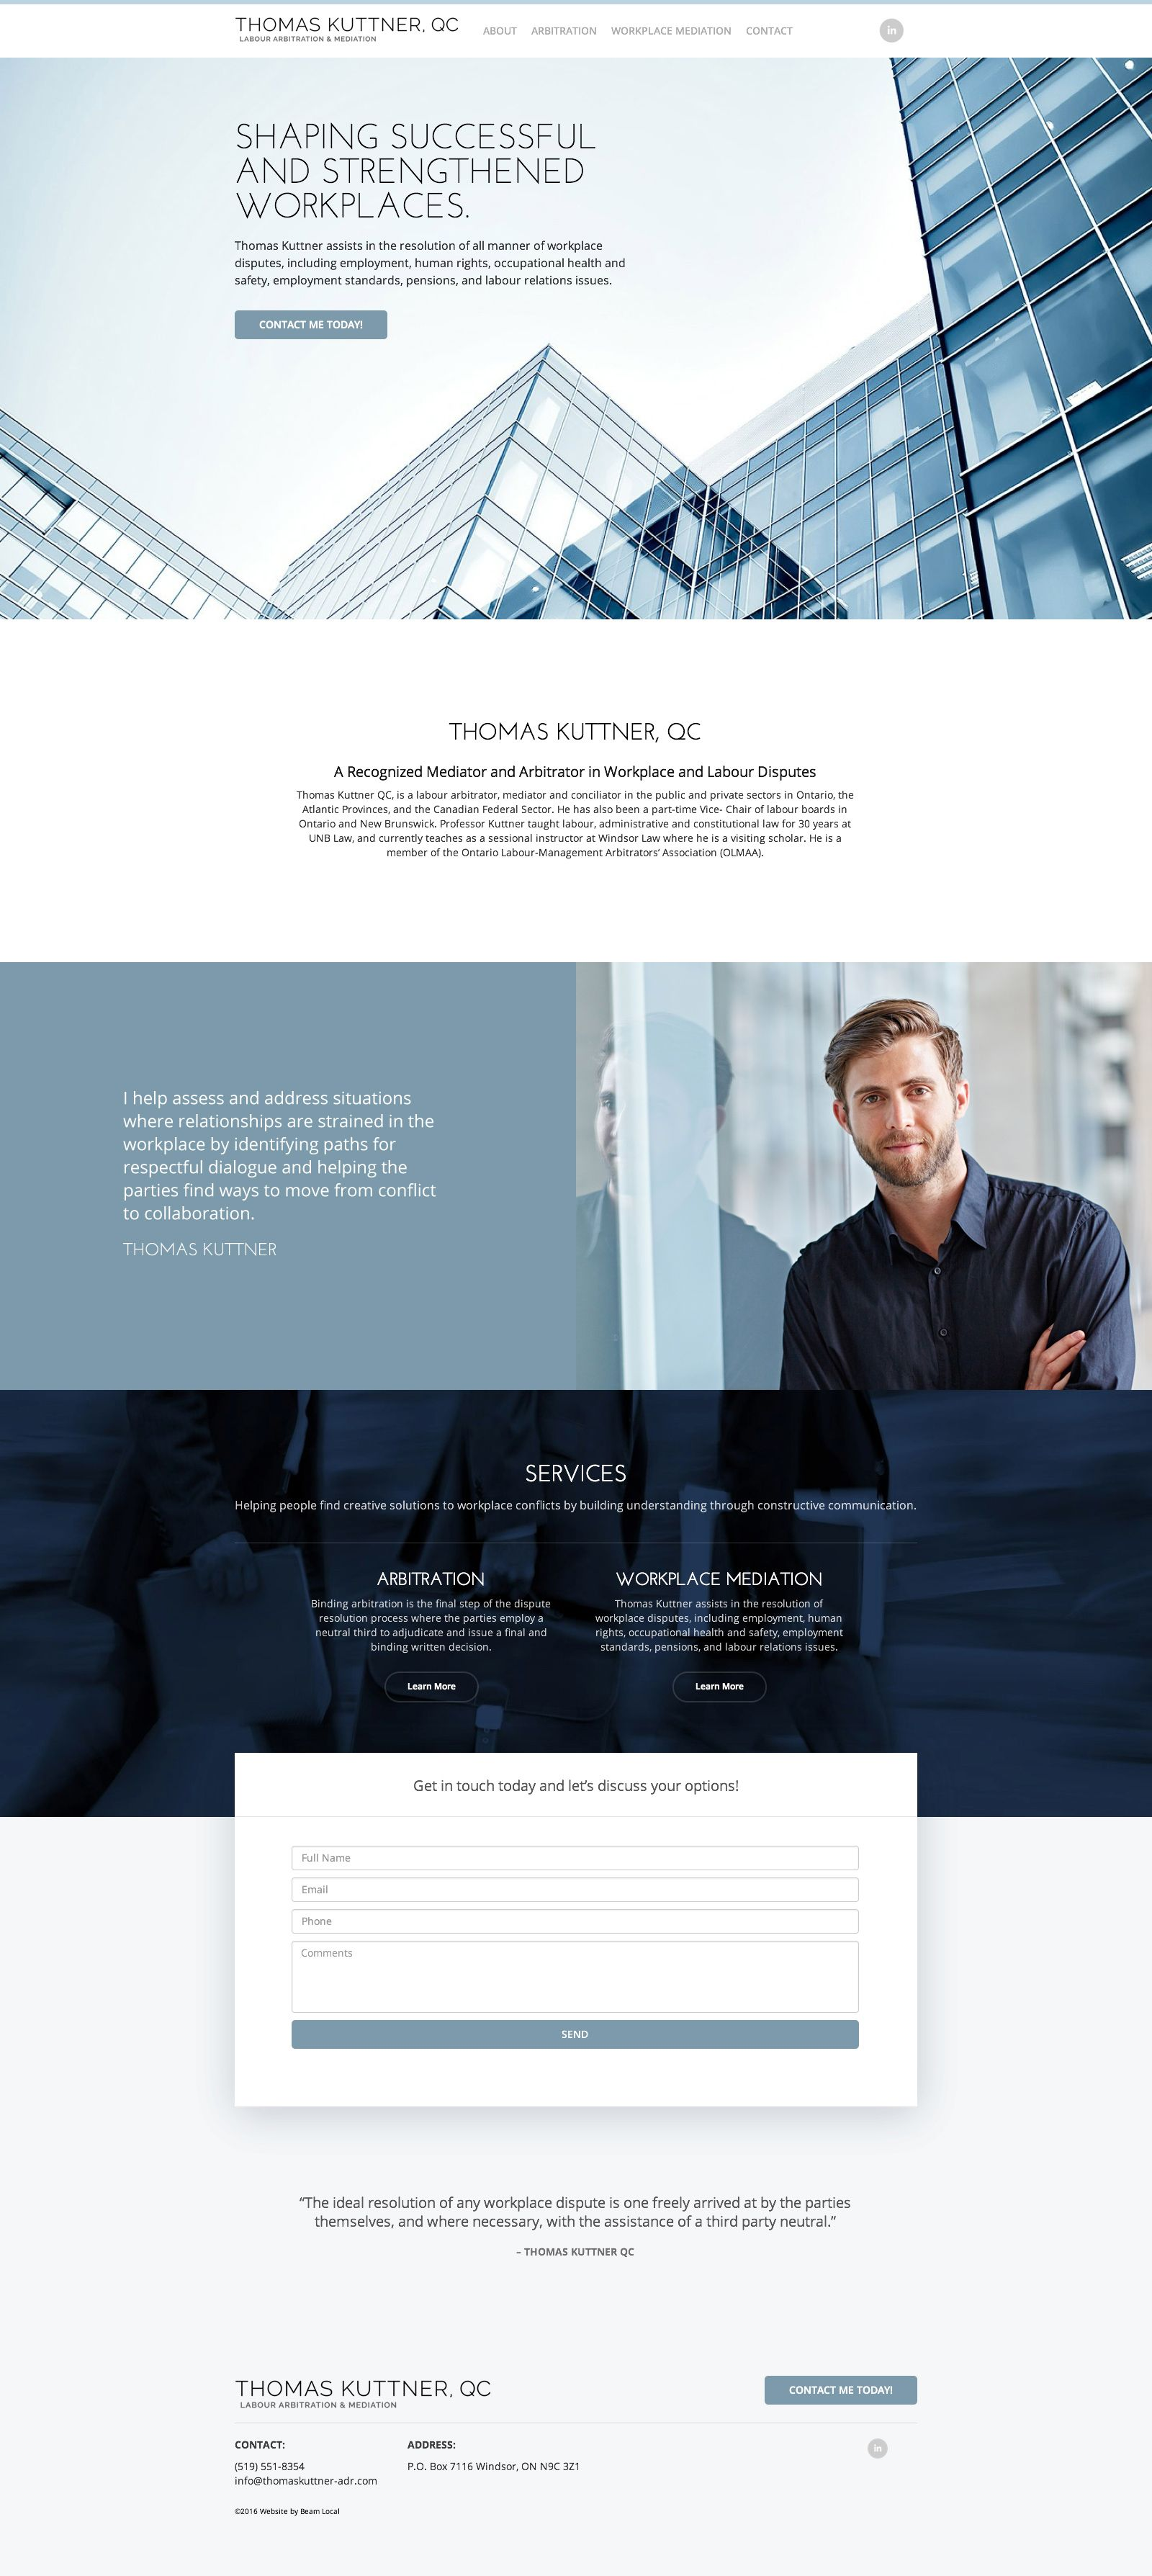 Are These The 10 Best Law Firm Website Designs For 2016 Lawyer Website Design Law Firm Website Design Corporate Website Design